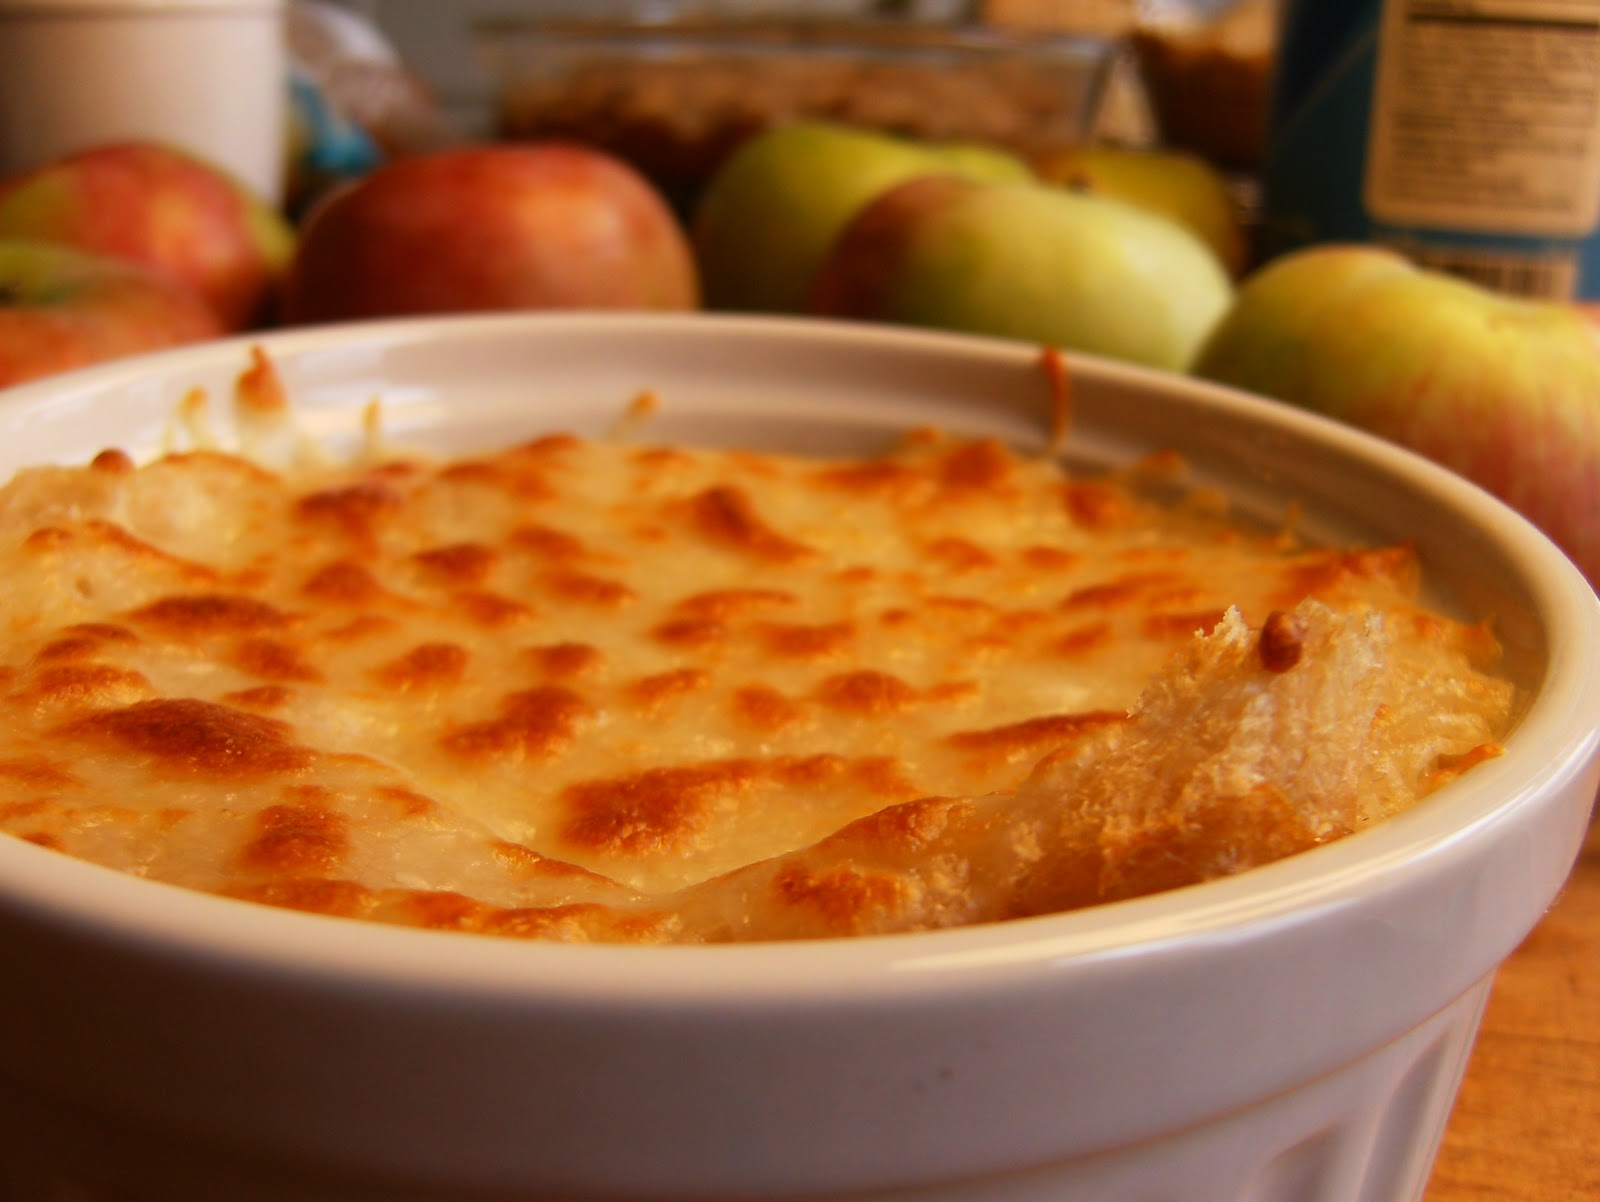 Curiously Local: Apple Week: Apple Onion Soup Gratin